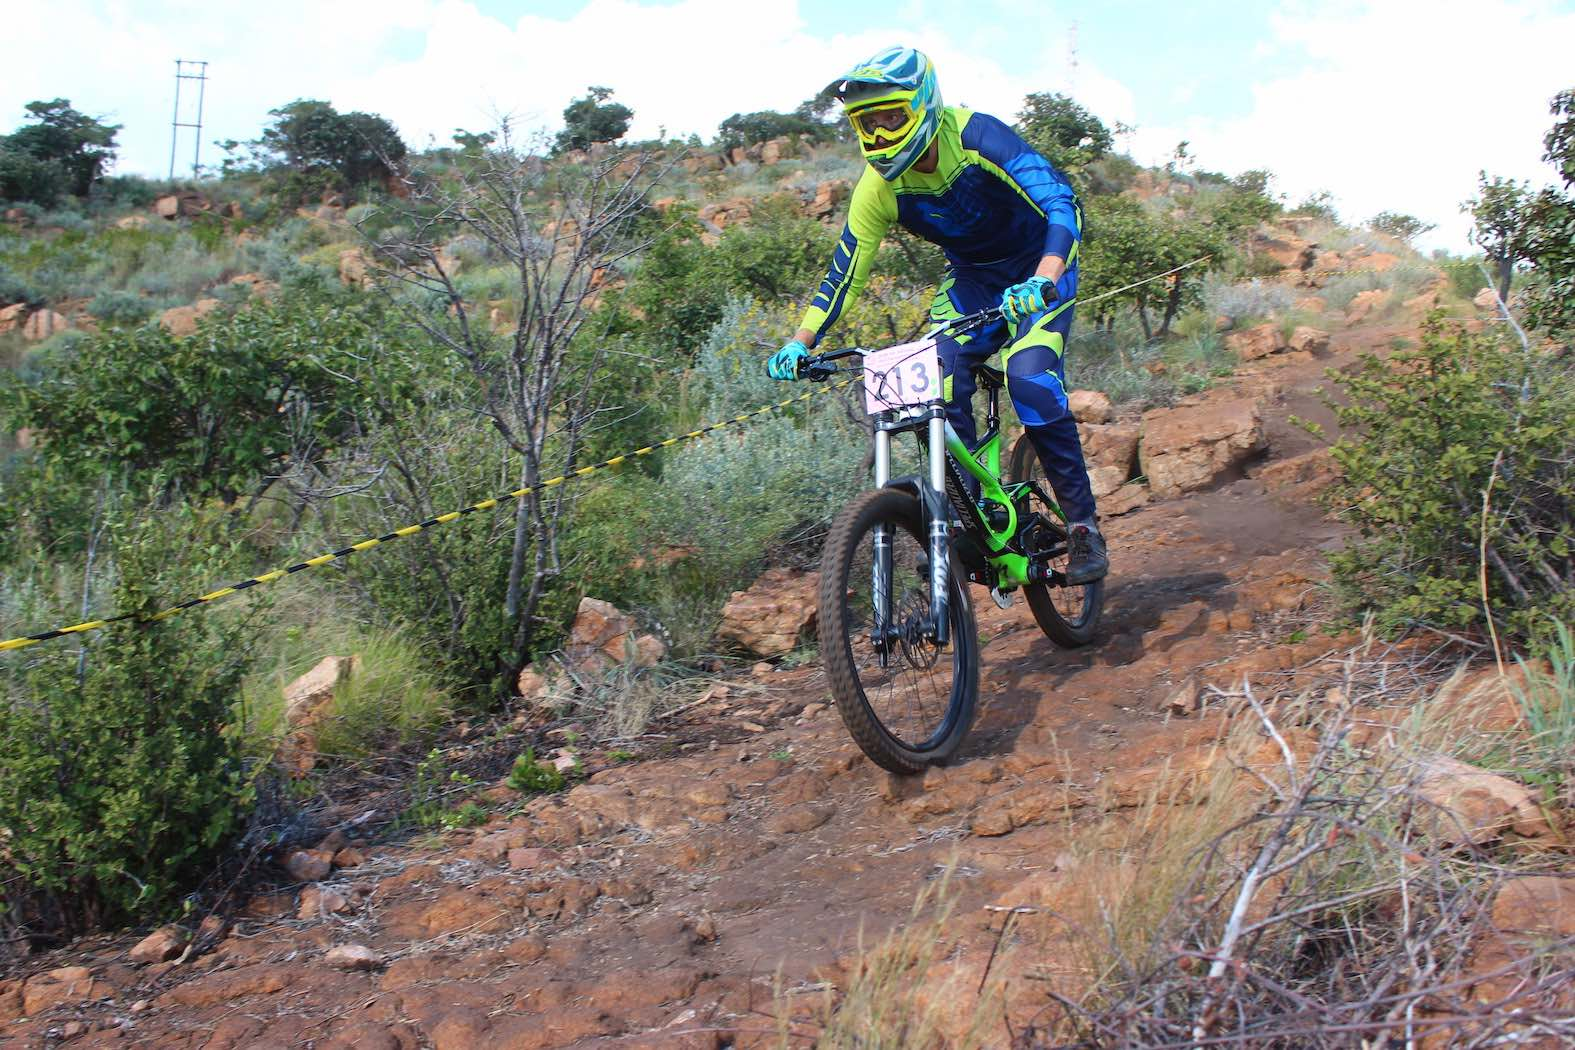 Downhill MTB action from the 2018 SA Champs